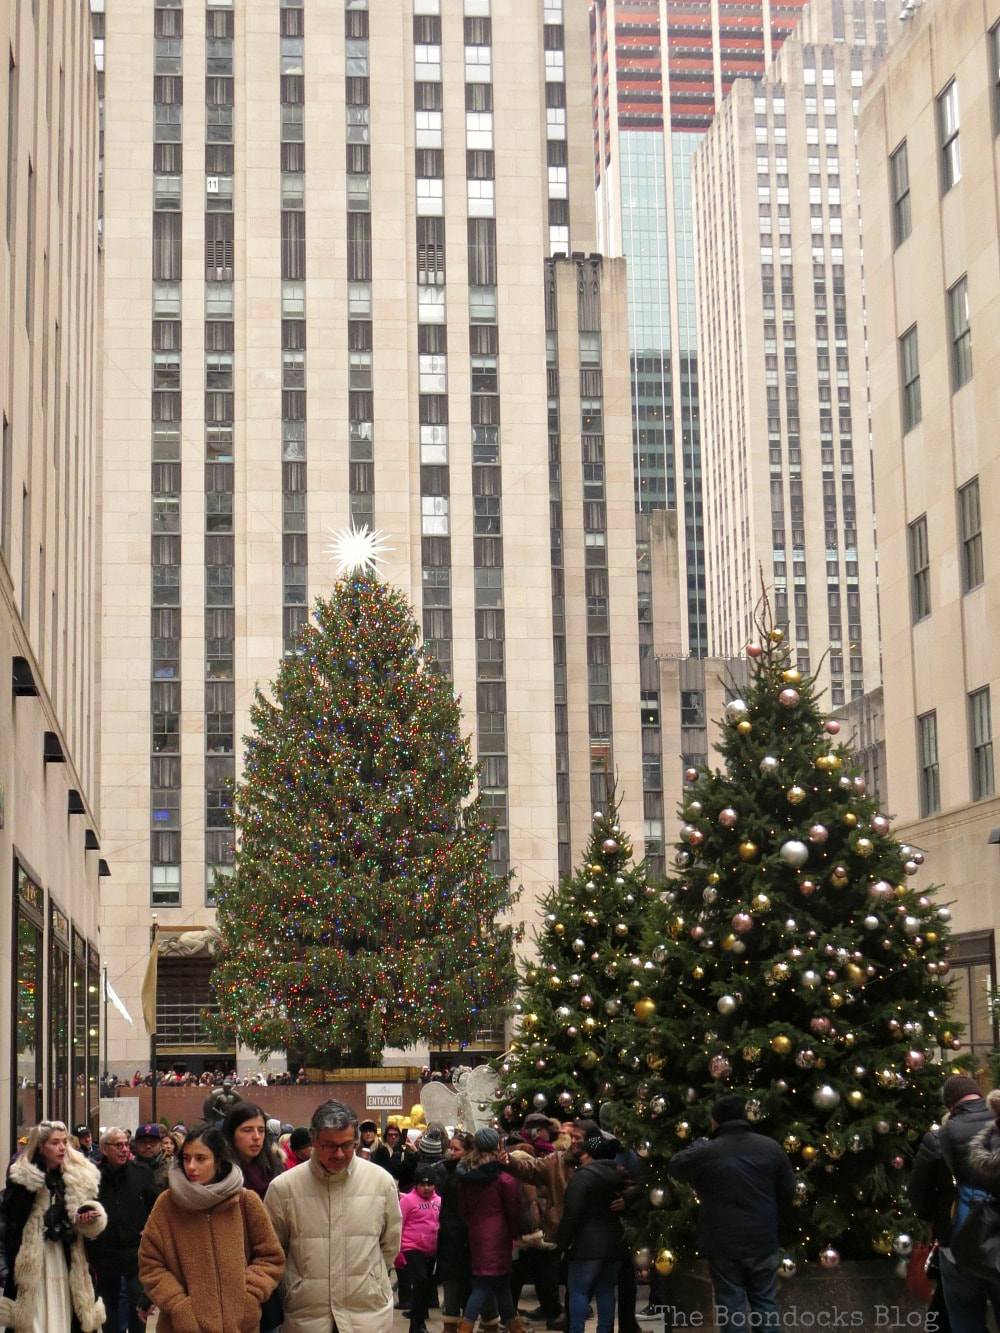 The big tree at Rockefeller Center, A Visit to the Spectacular Tree at Rockefeller Center www.theboondocksblog.com